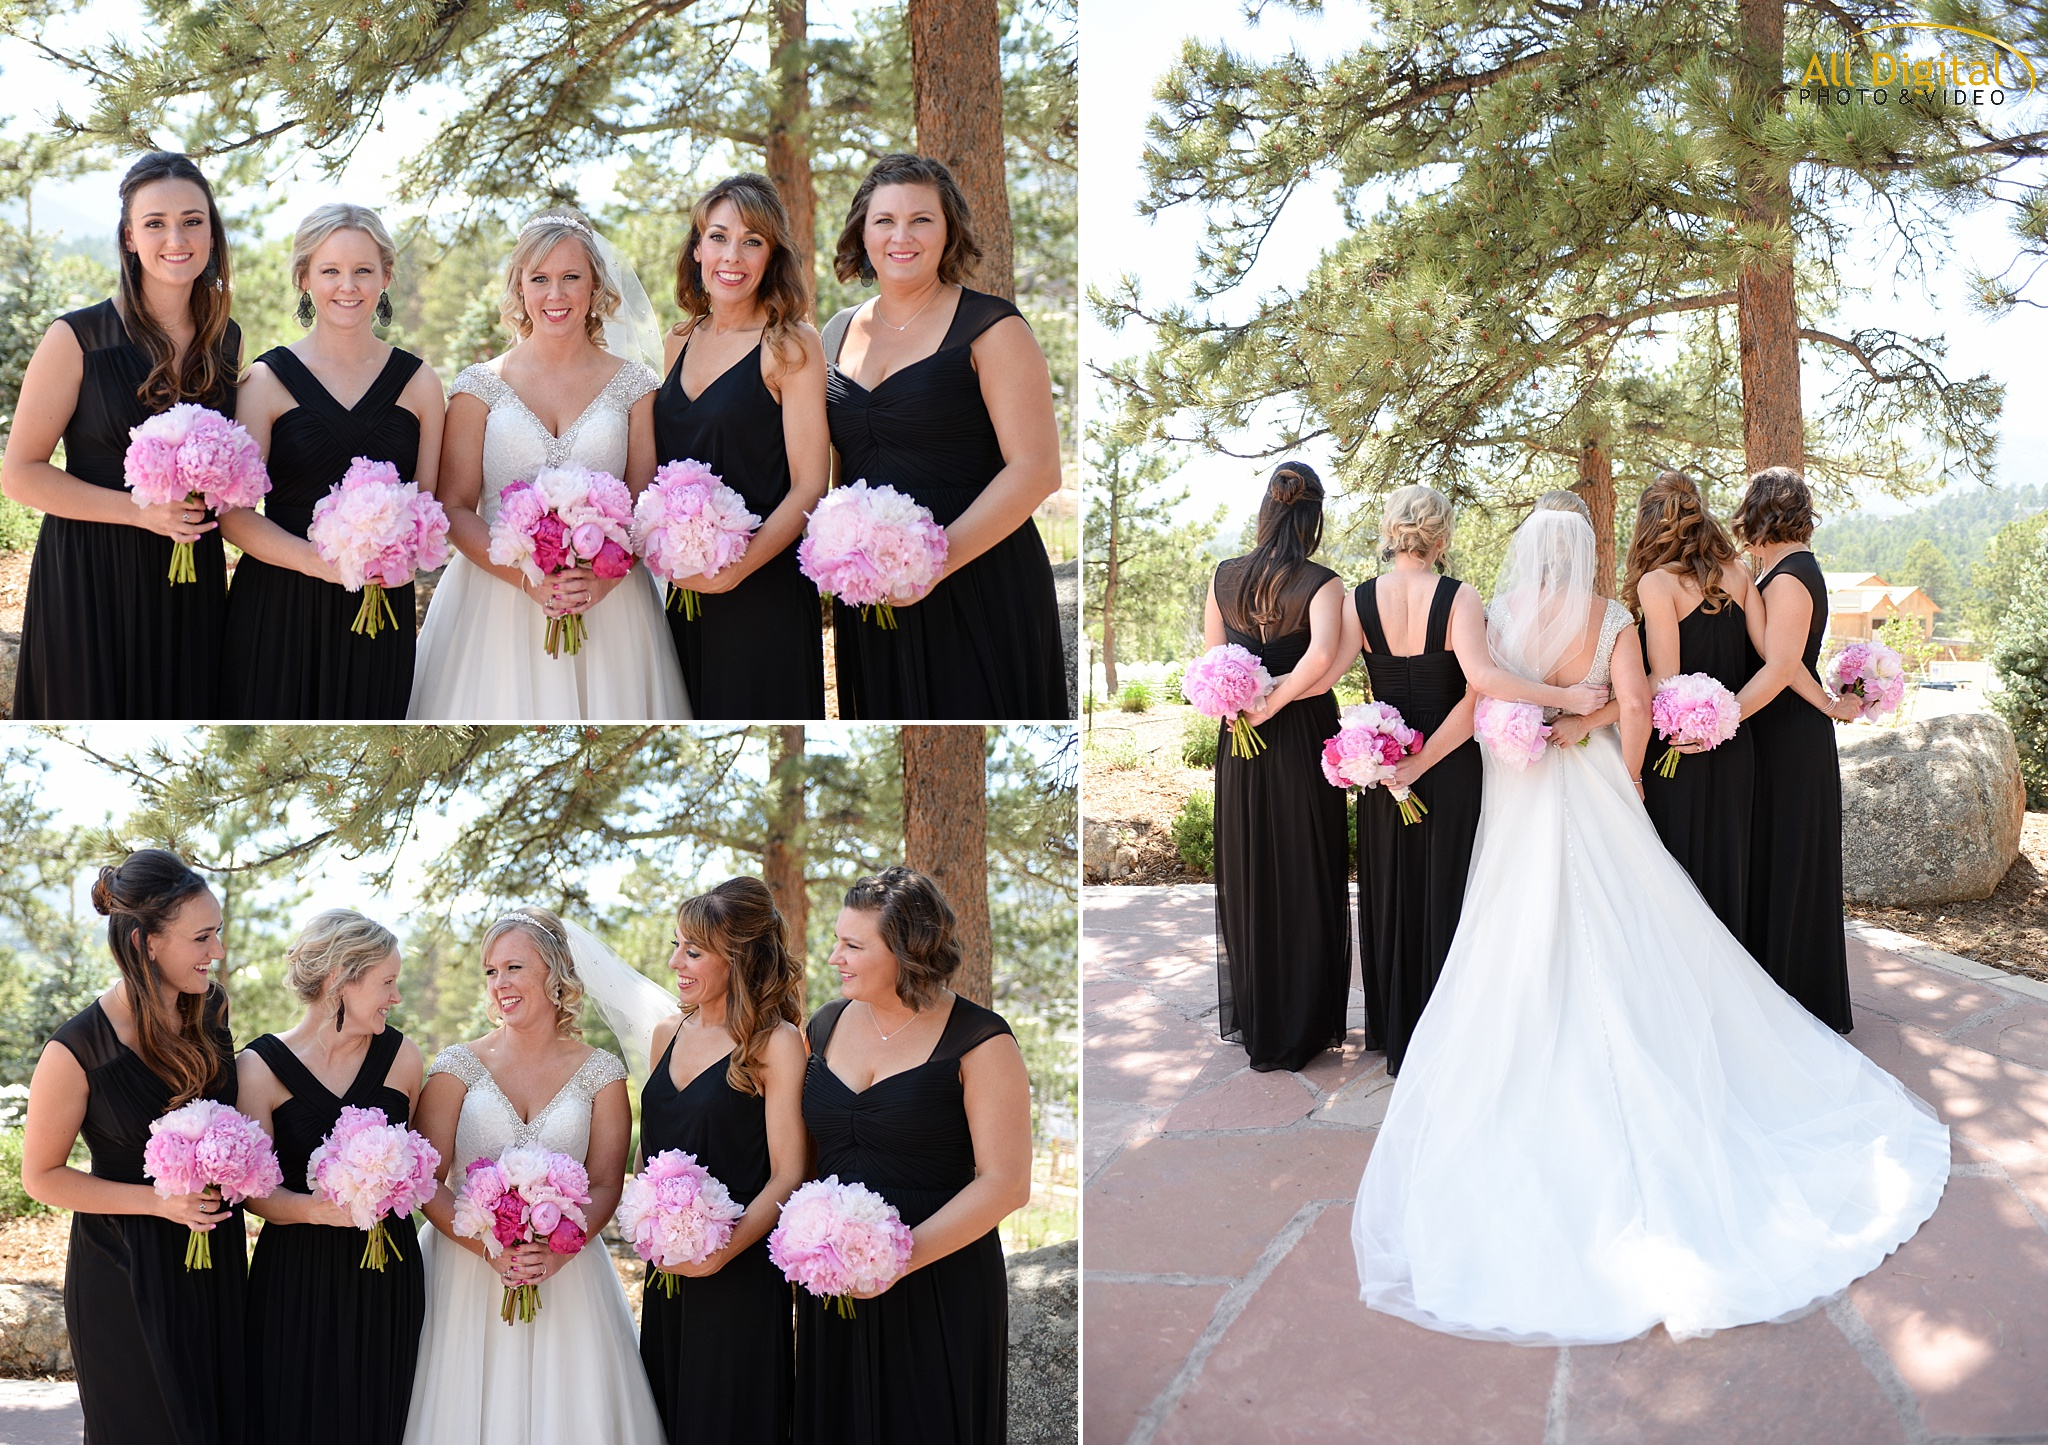 Alison & her bridesmaids at the Stanley Hotel in Estes Park, Colorado